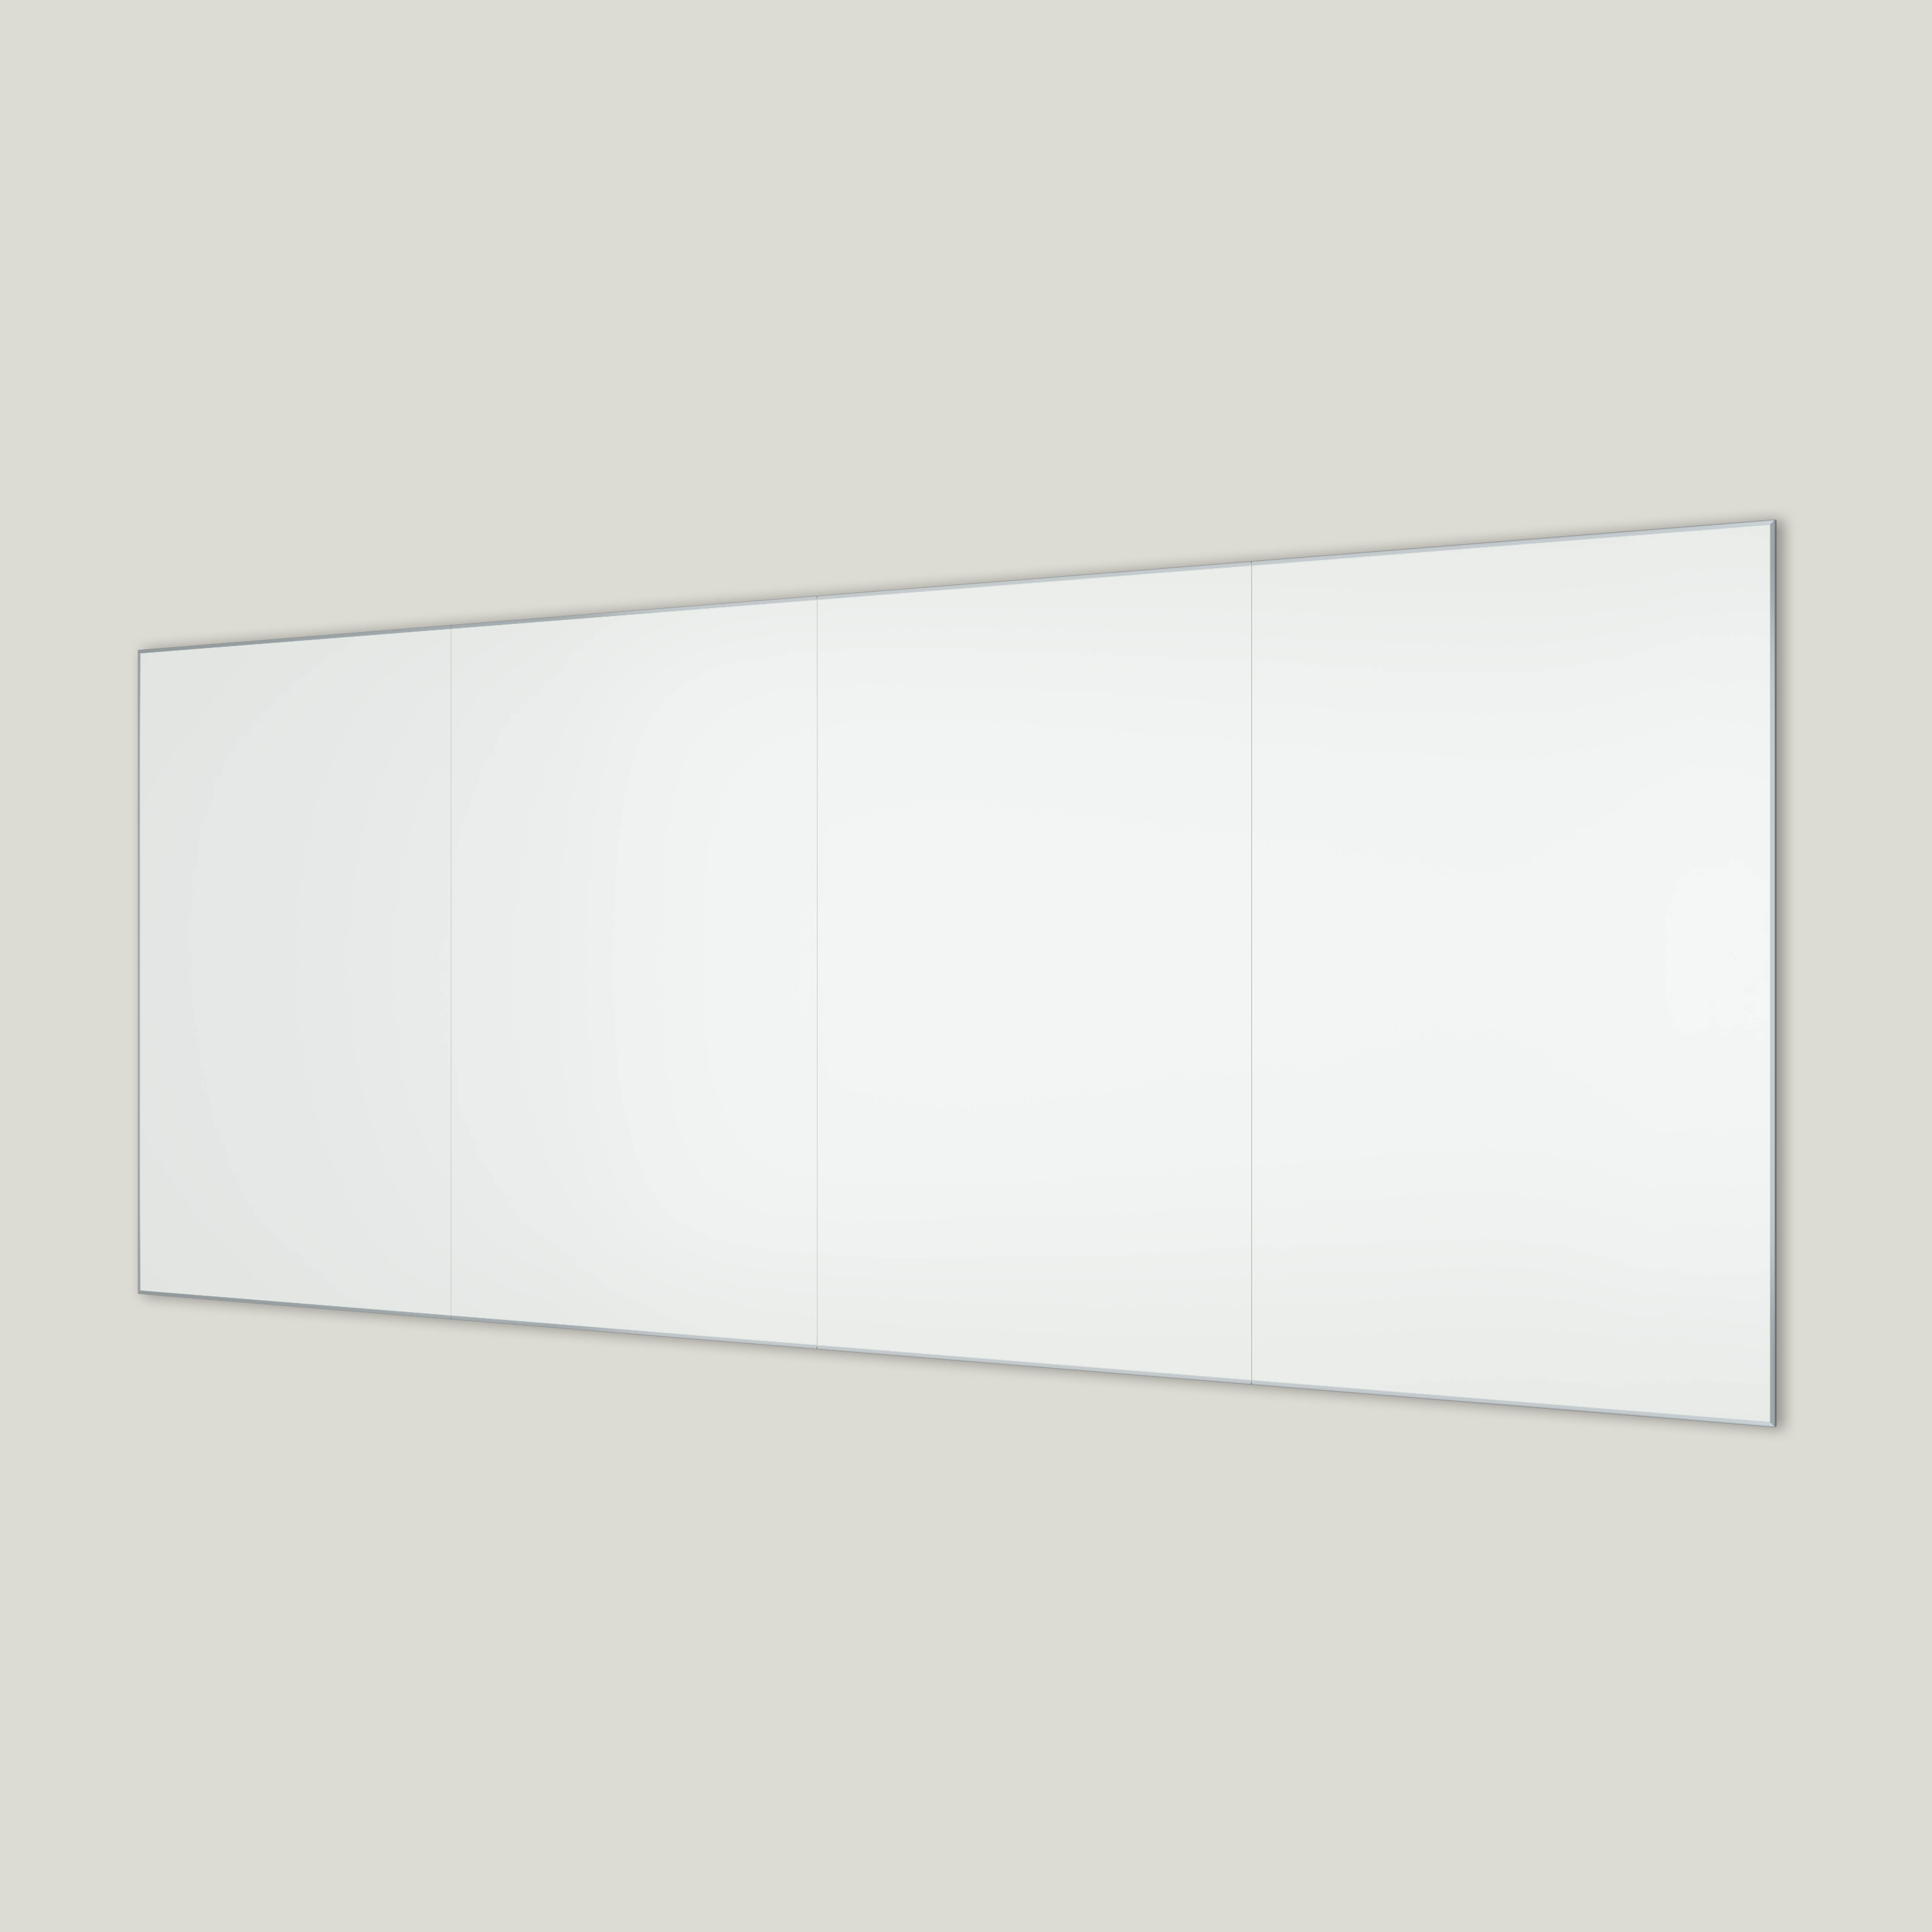 Framed whiteboard mounted to wall